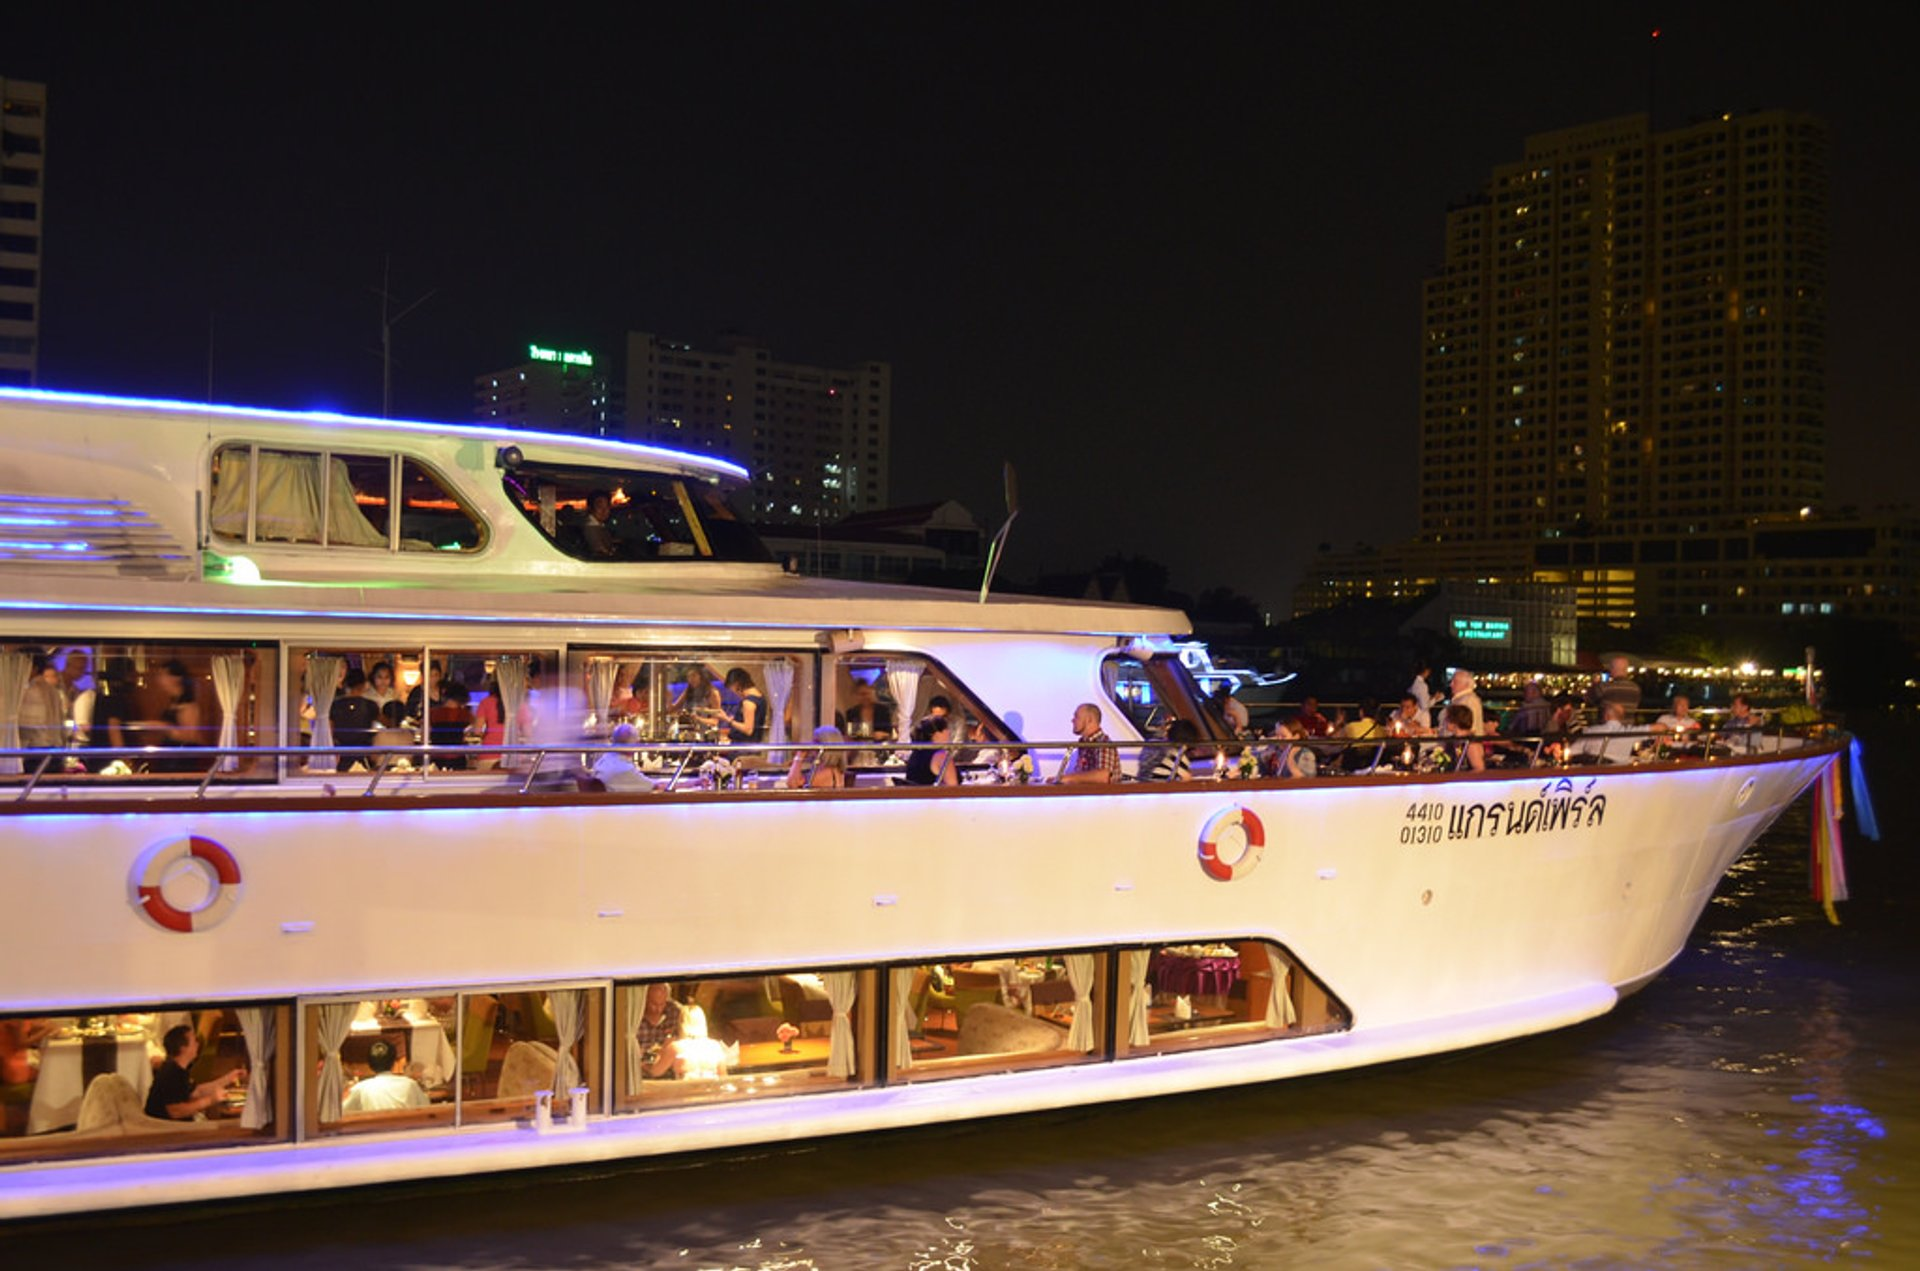 Boat Cruises in Bangkok 2019 - Best Time